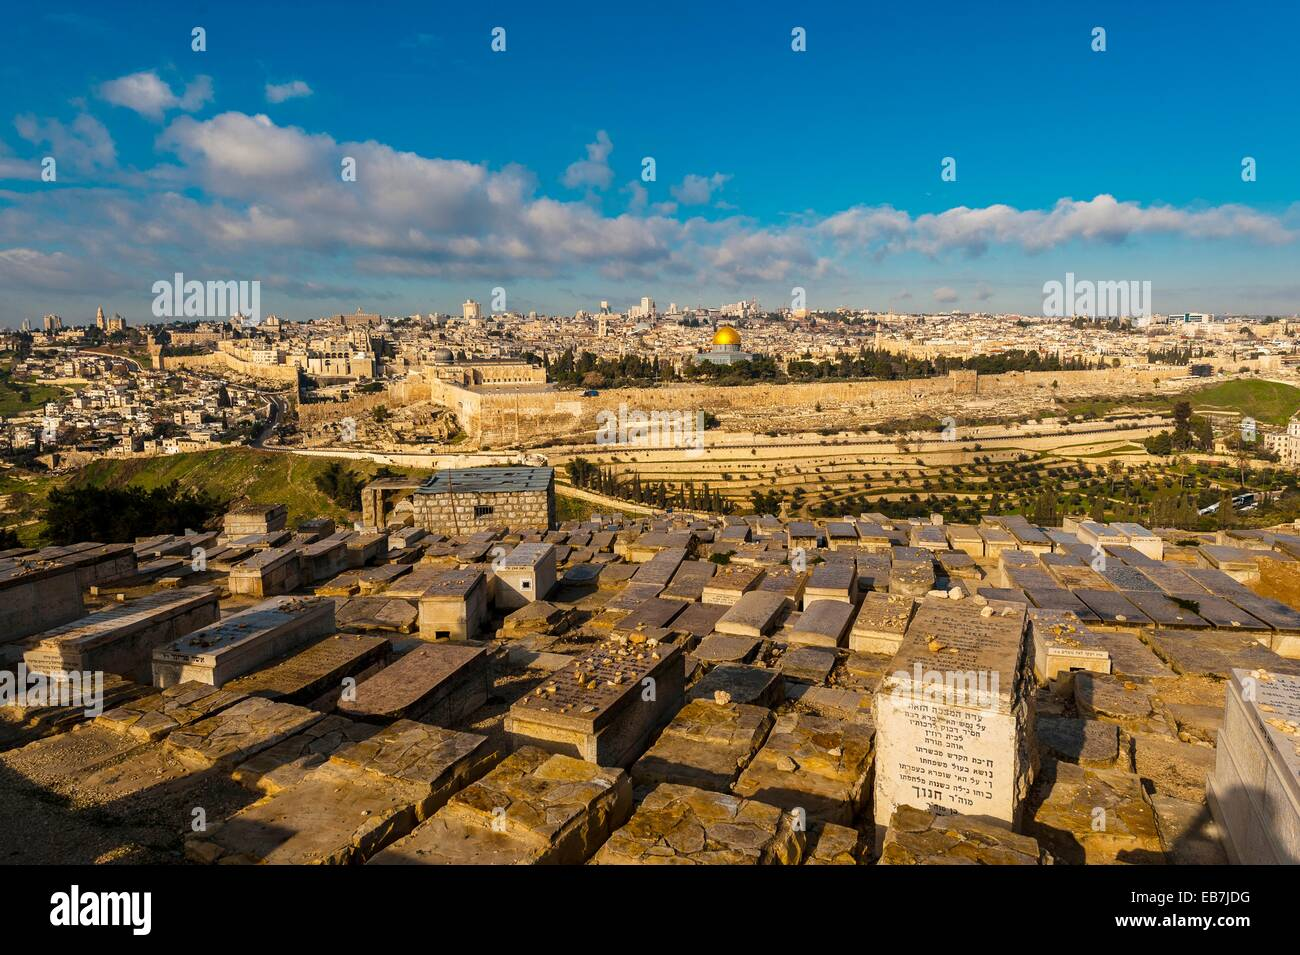 Gravestones 150,000 graves Jewish Cemetery on the Mount Olives with the Dome the Rock on the Temple Mount in background - Stock Image